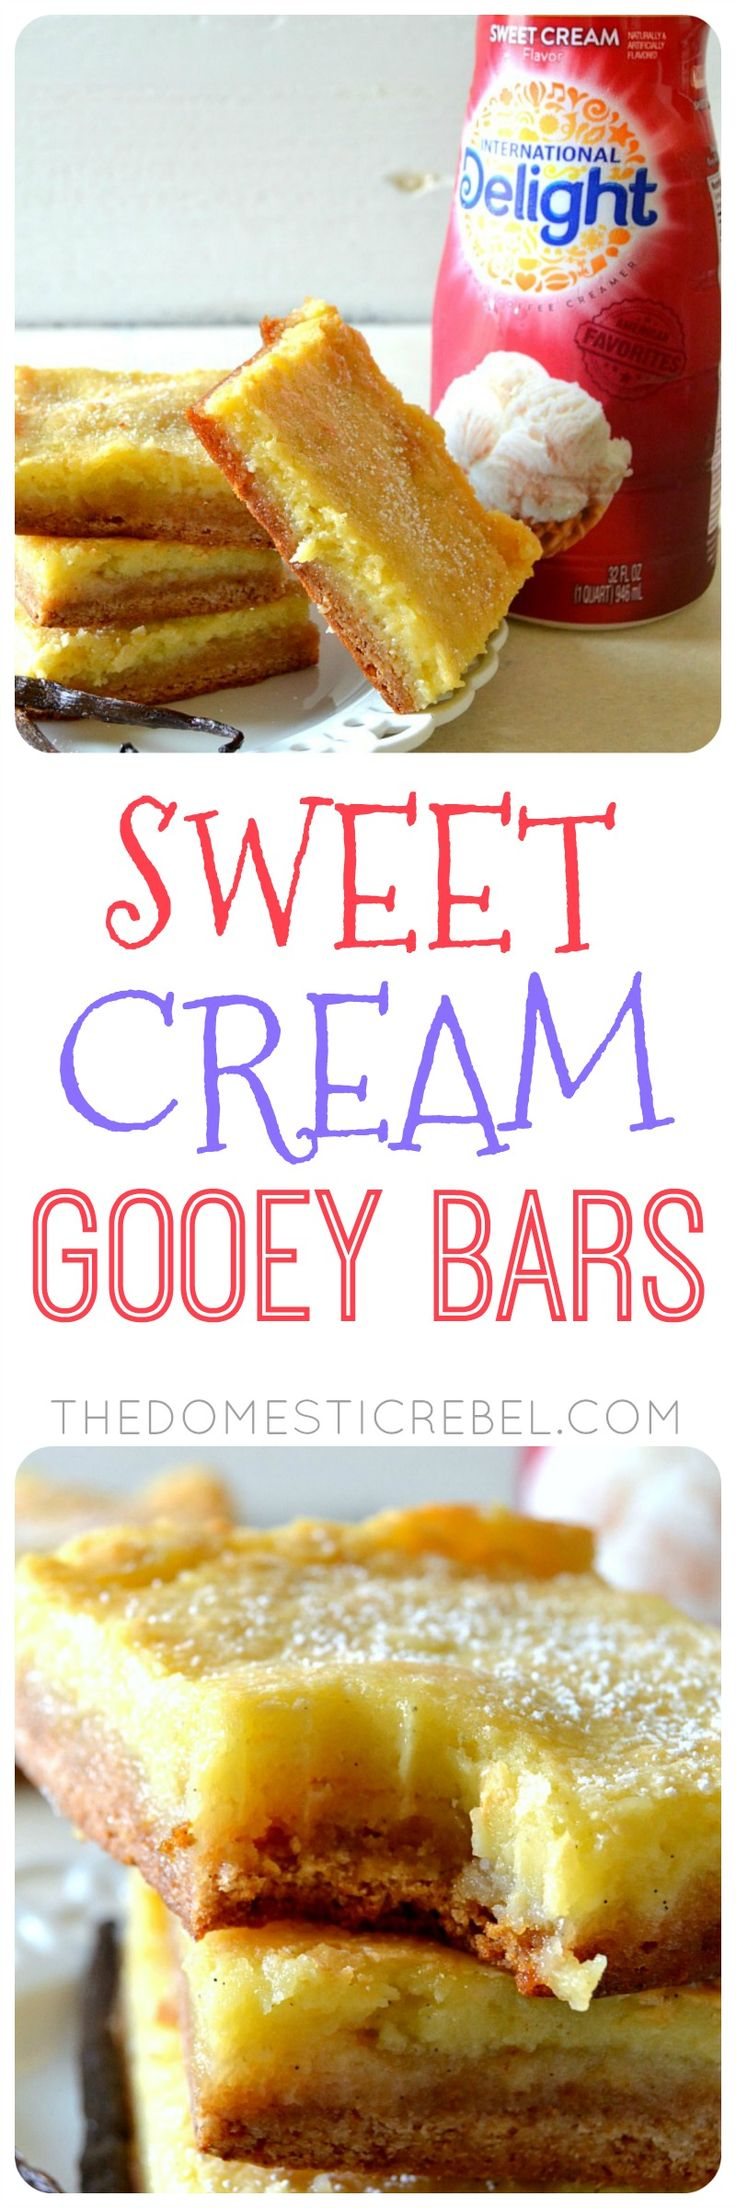 These Sweet Cream Gooey Bars are fabulous! They taste like melted vanilla bean ice cream but in a gooey, chewy bar form! Made with International Delight Sweet Cream Coffee Creamer & fresh vanilla beans for a lovely and delicious bar recipe!